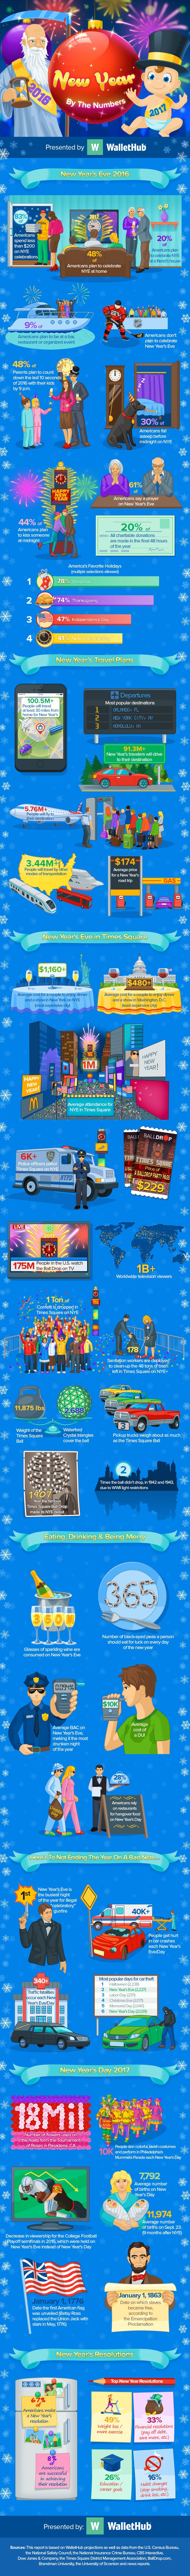 New-Years-Eve-By-The-Numbers-v6_opt